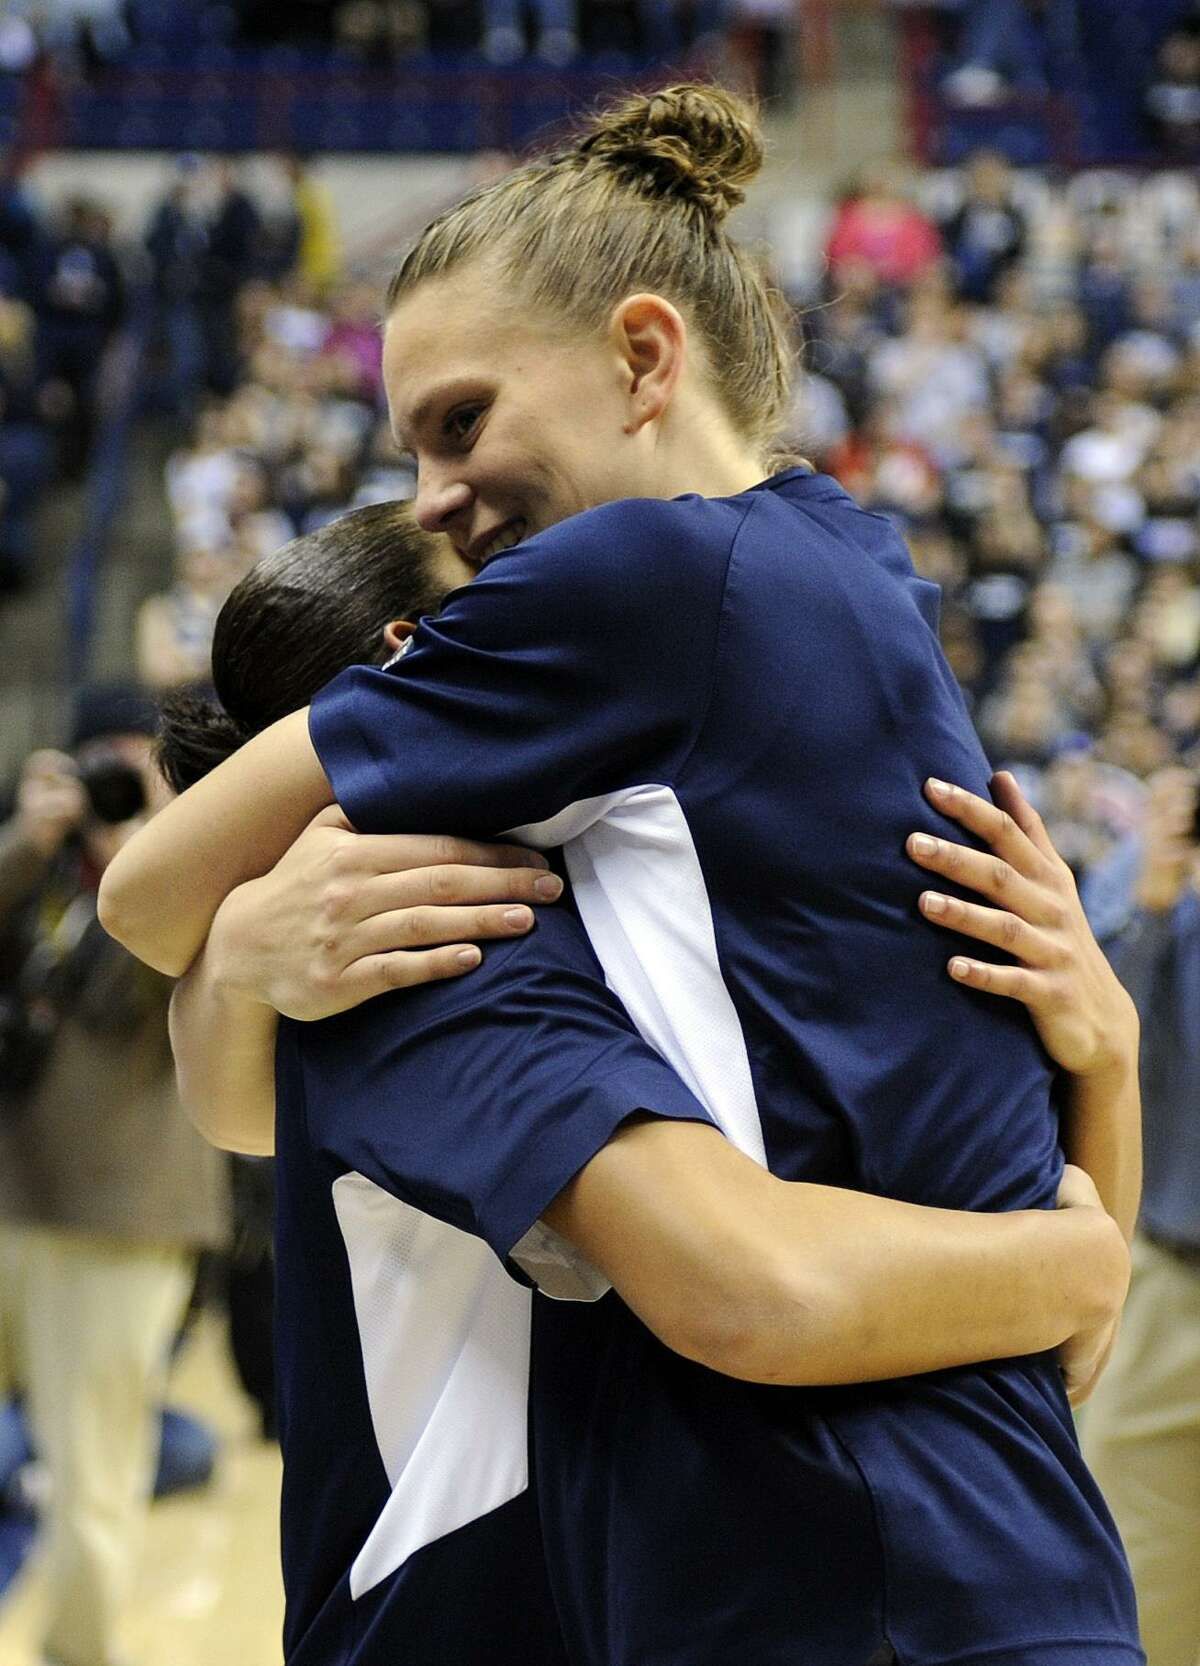 Heather Buck, right, hugs Bria Hartley during Senior Night ceremonies before Connecticut's NCAA basketball game against Seton Hall in Storrs, Conn., Saturday, Feb. 23, 2013. (AP Photo/Fred Beckham)